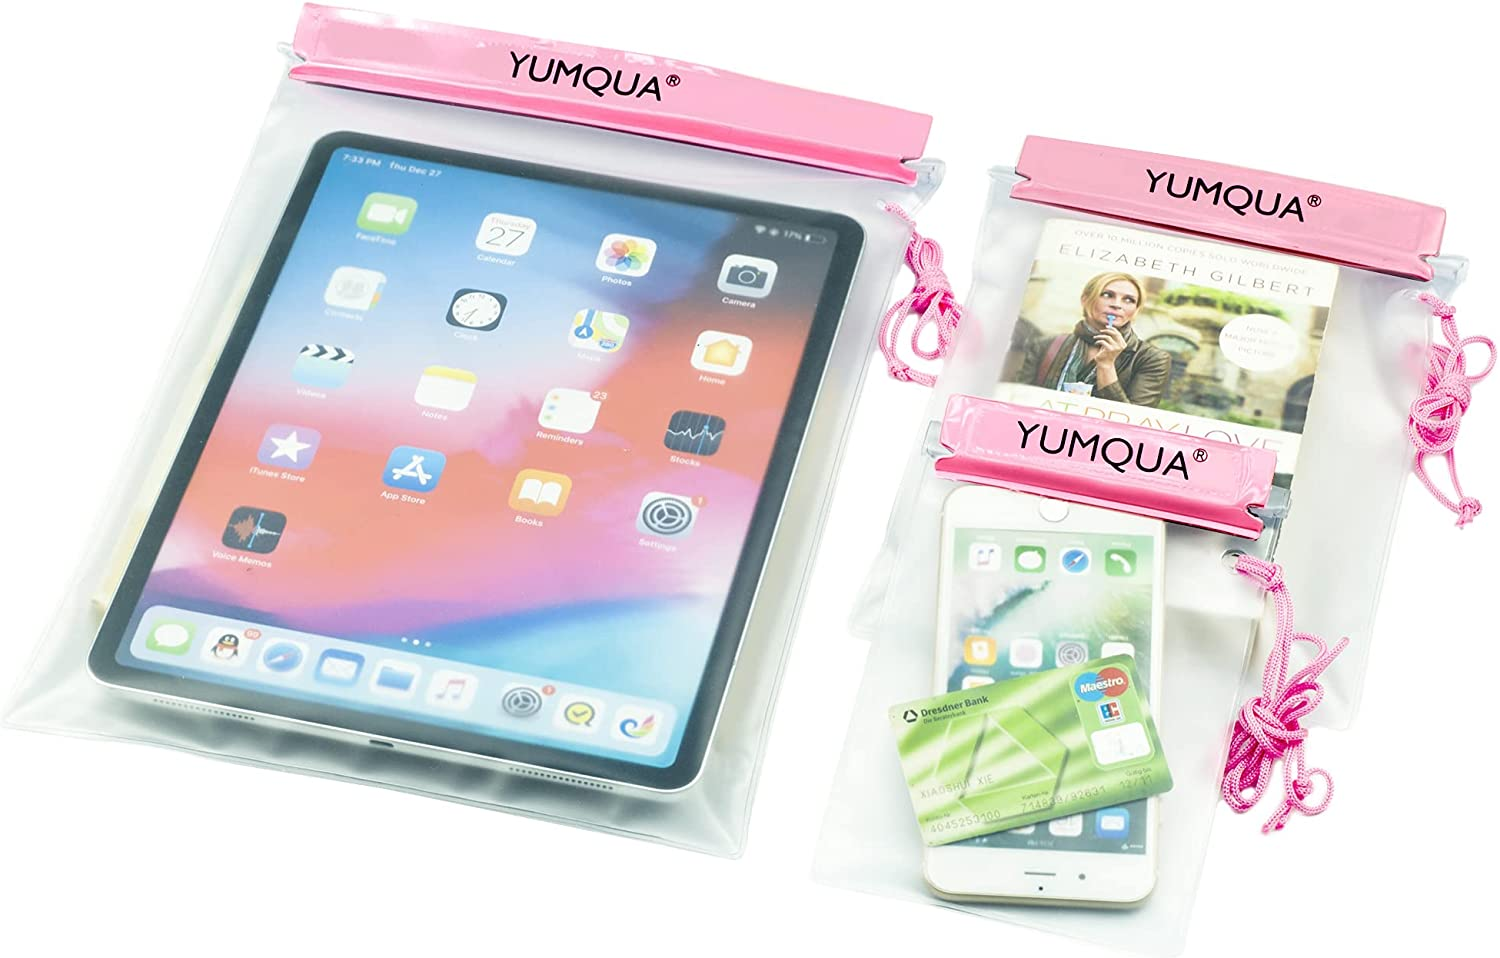 YUMQUA New arrival Clear Waterproof Max 45% OFF Bags Water Tight f Pouch Cases Dry